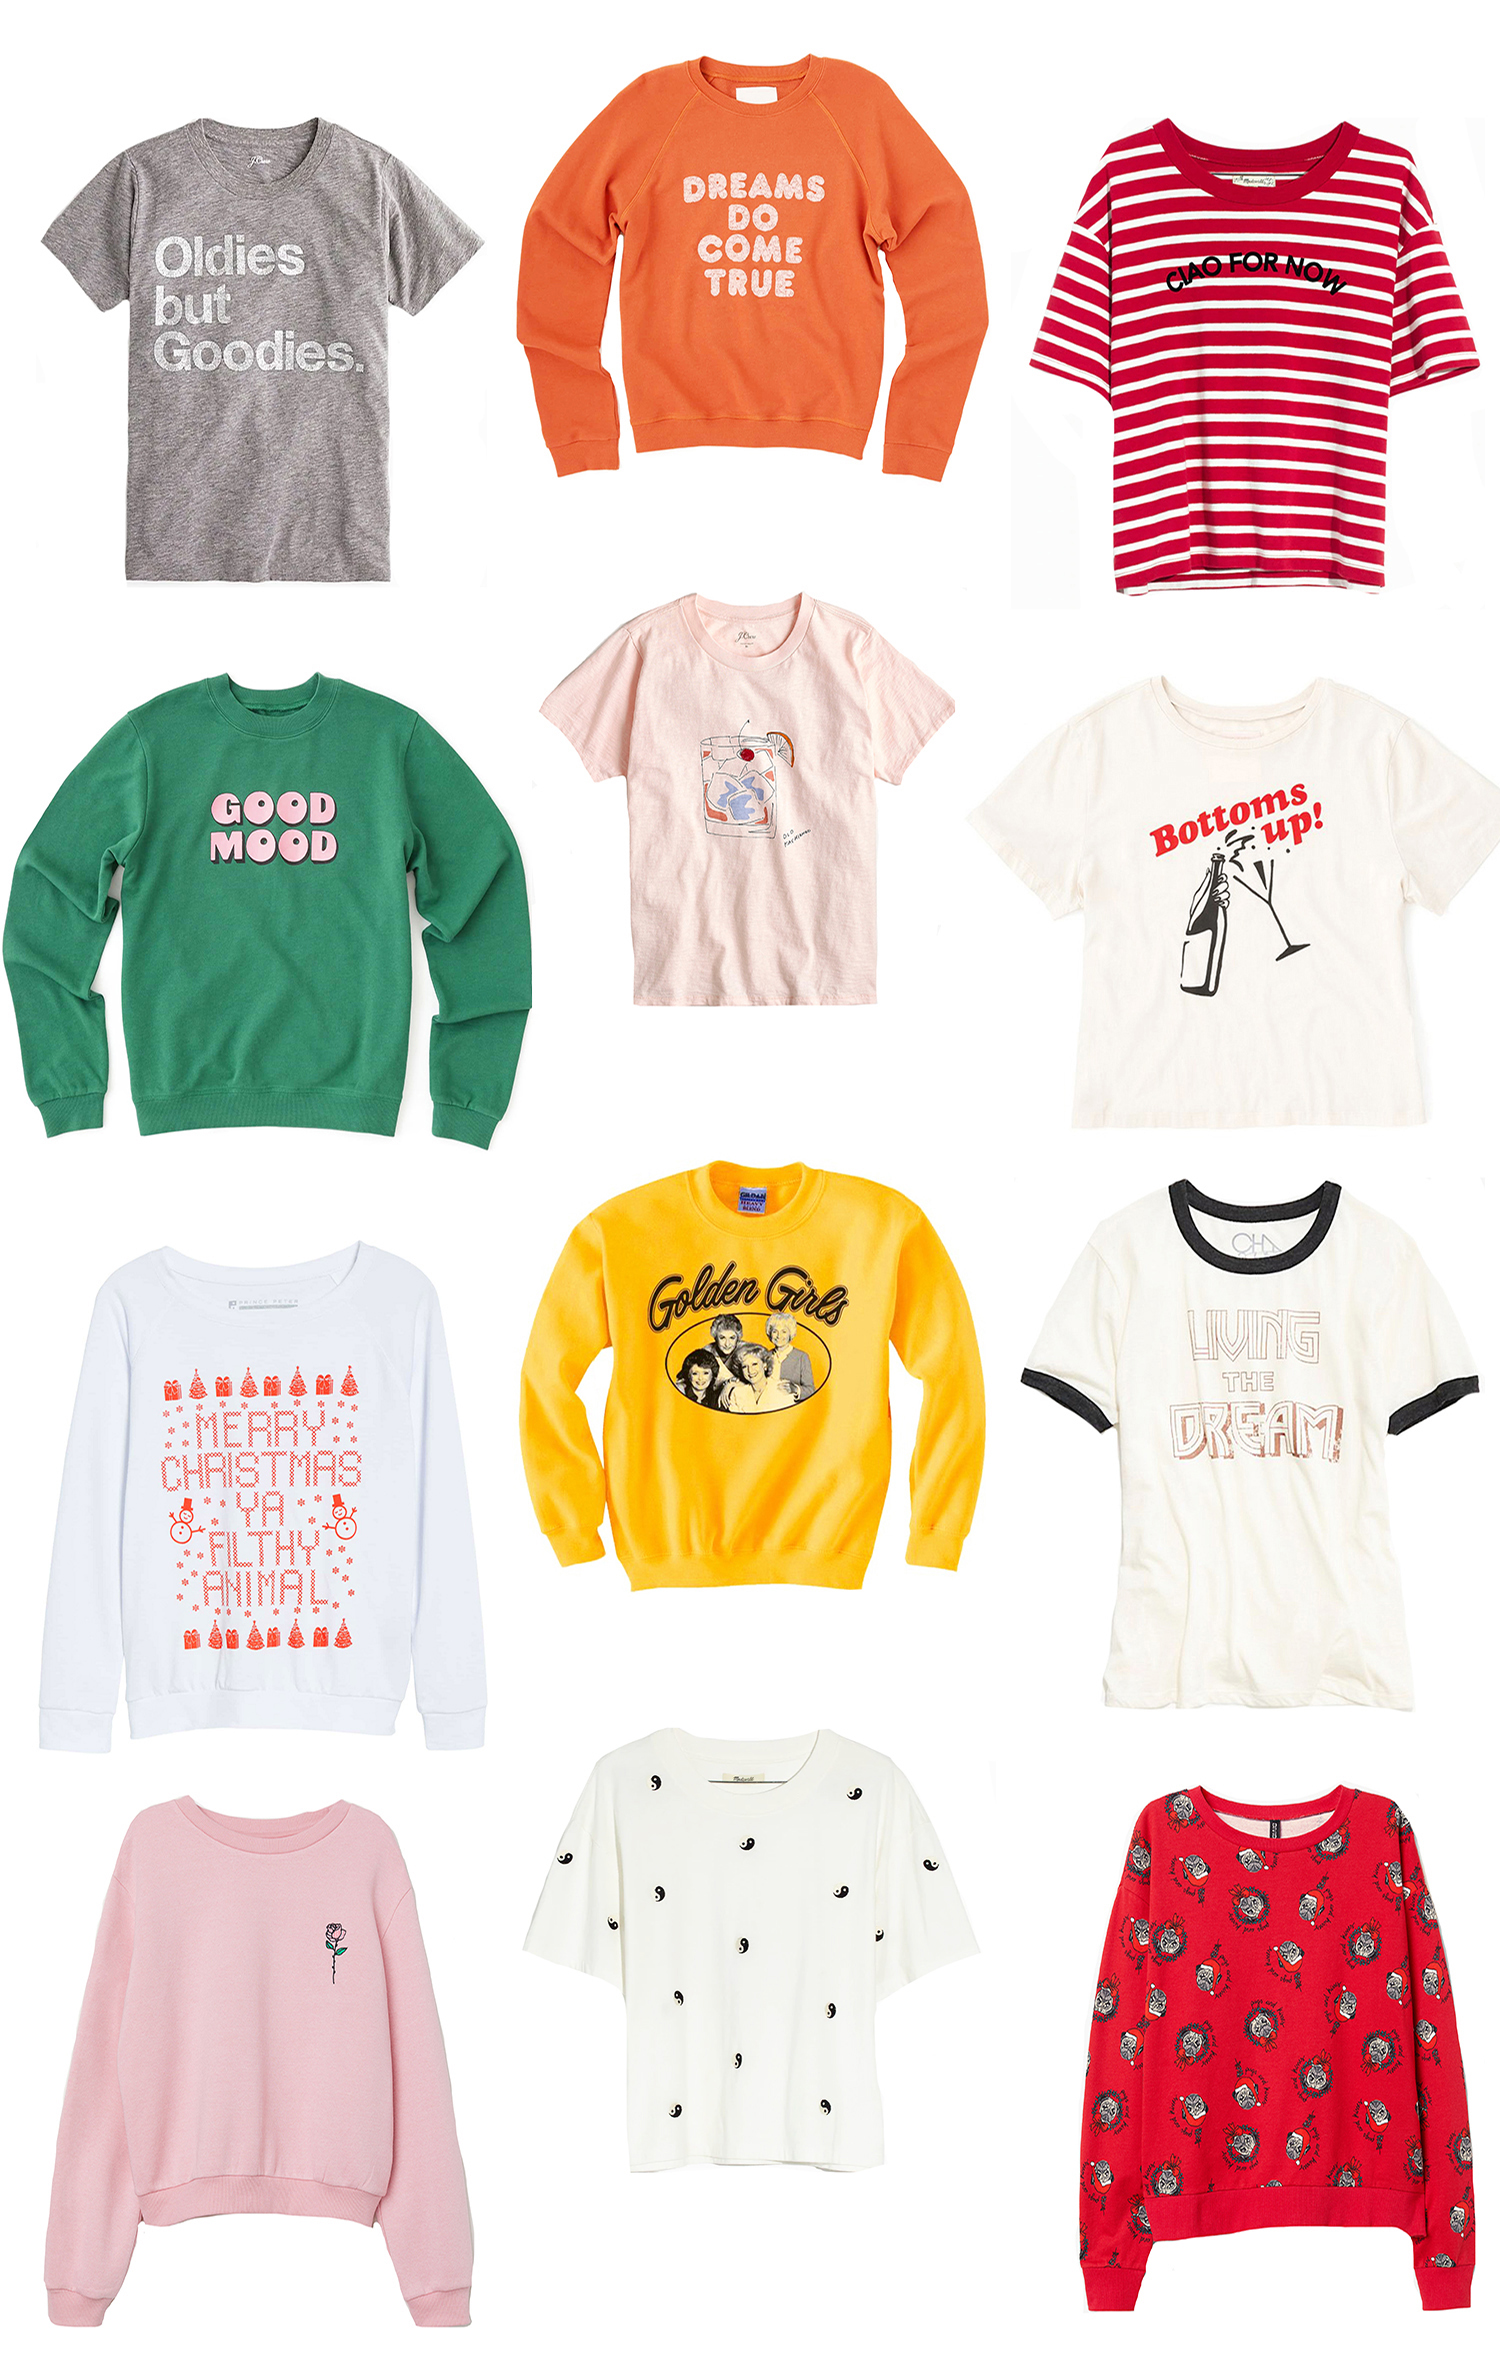 6879aae0ac5e It s hard to resist a cute graphic tee or sweatshirt—especially when the  weather is chilly outside. We did a little window shopping and found some  cuuute ...